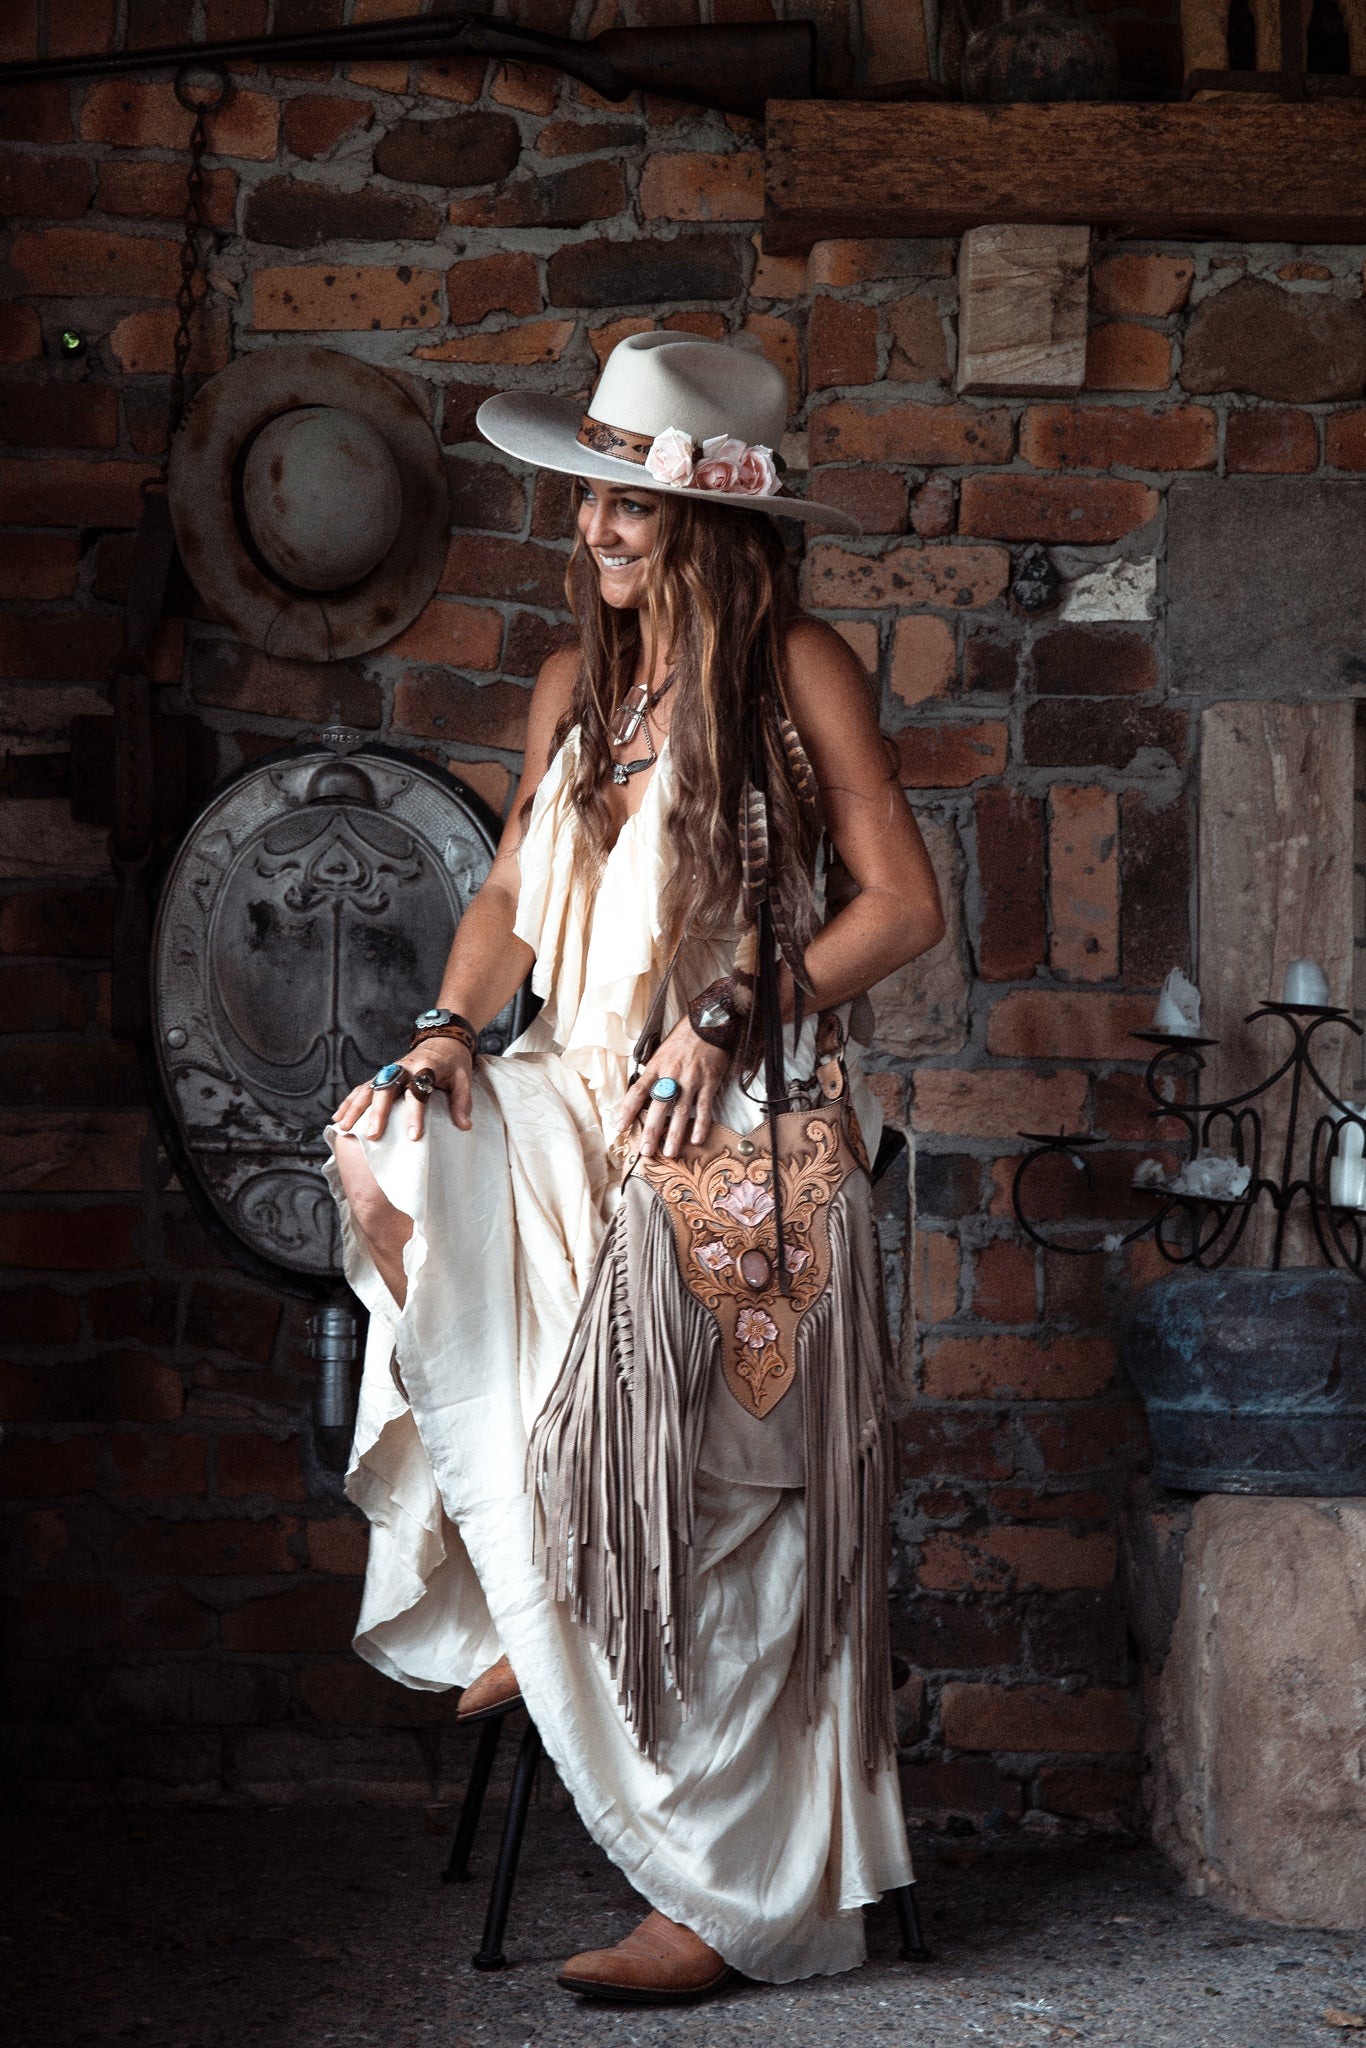 Dusty Mountain Bag in cream suede with long tassels and Rose Quartz stones - $2000